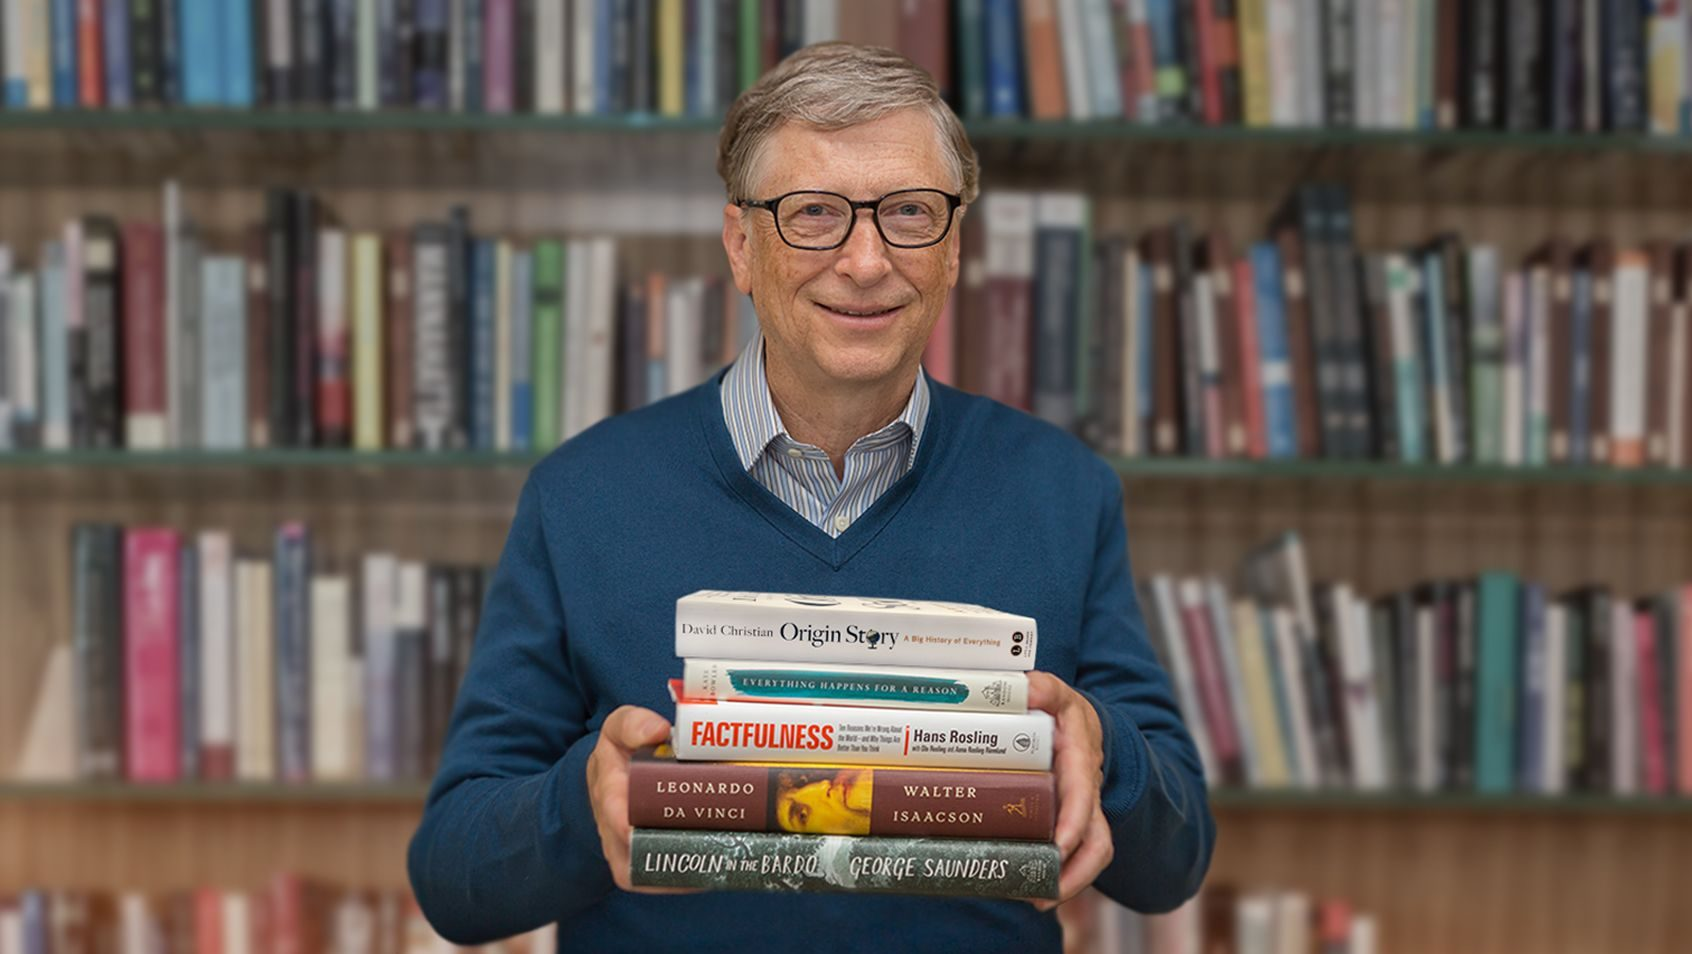 Bill Gates Summer Books 2019